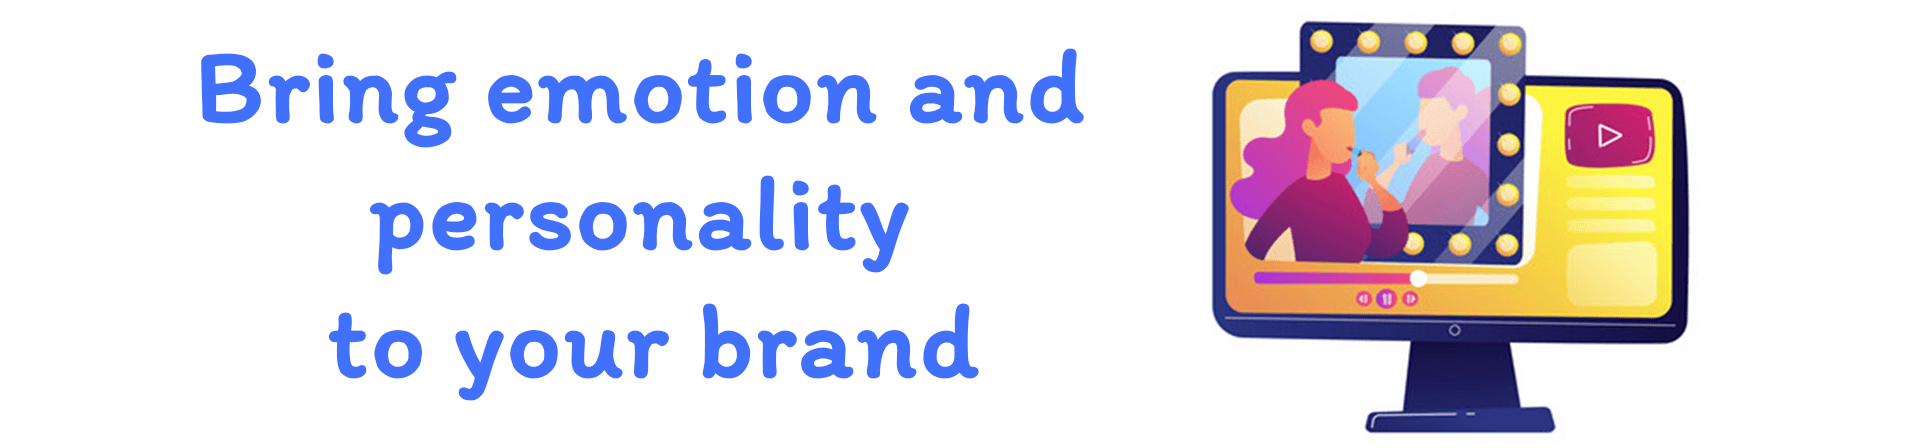 How to promote a brand?